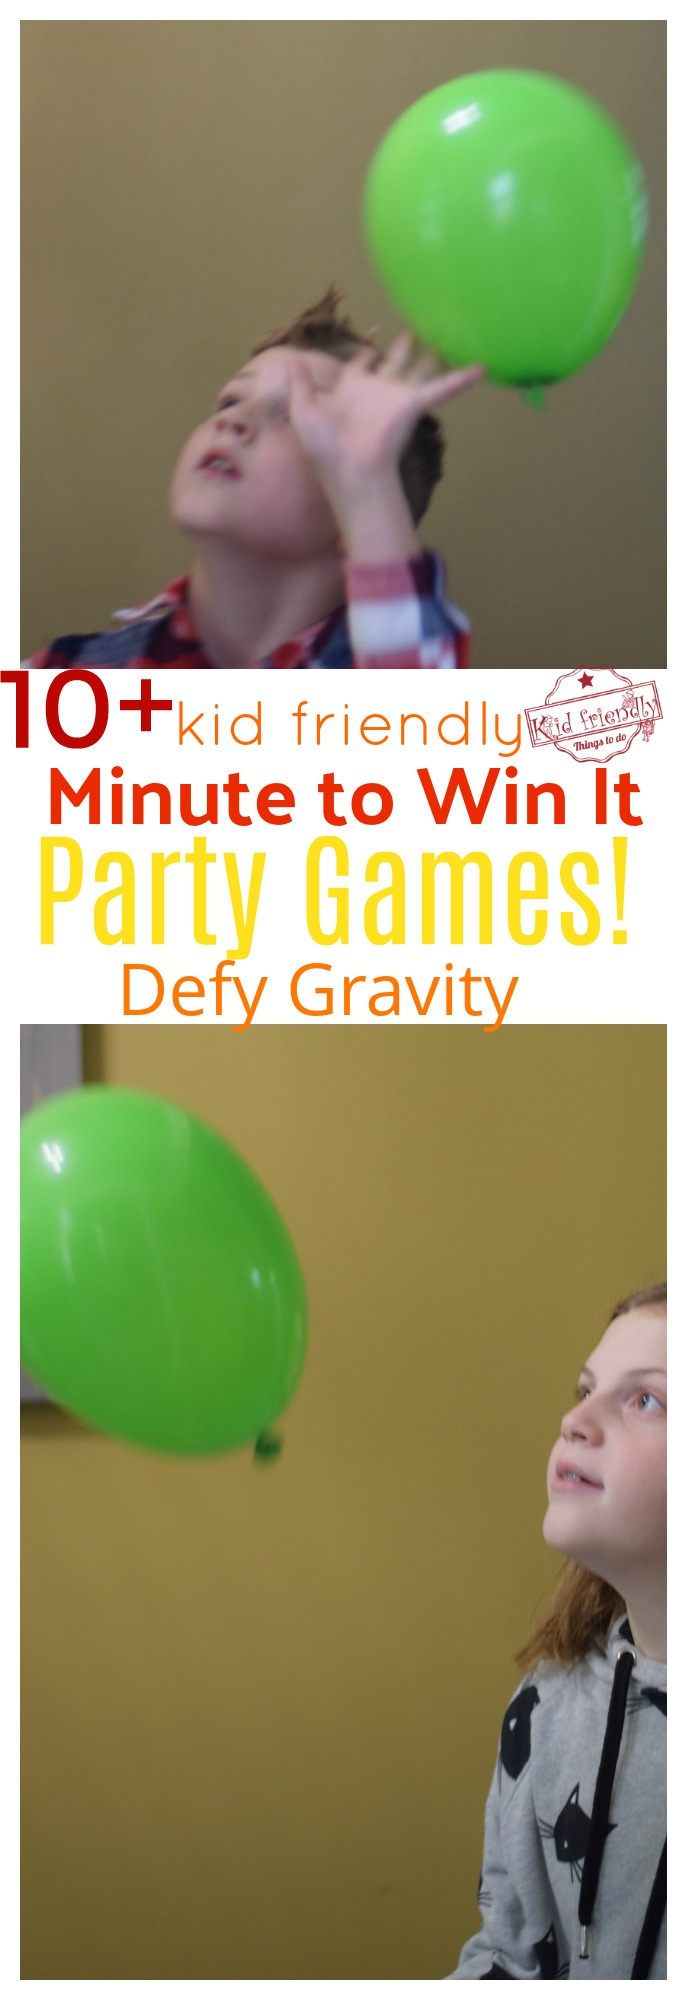 minute to win it game defy gravity game for kids